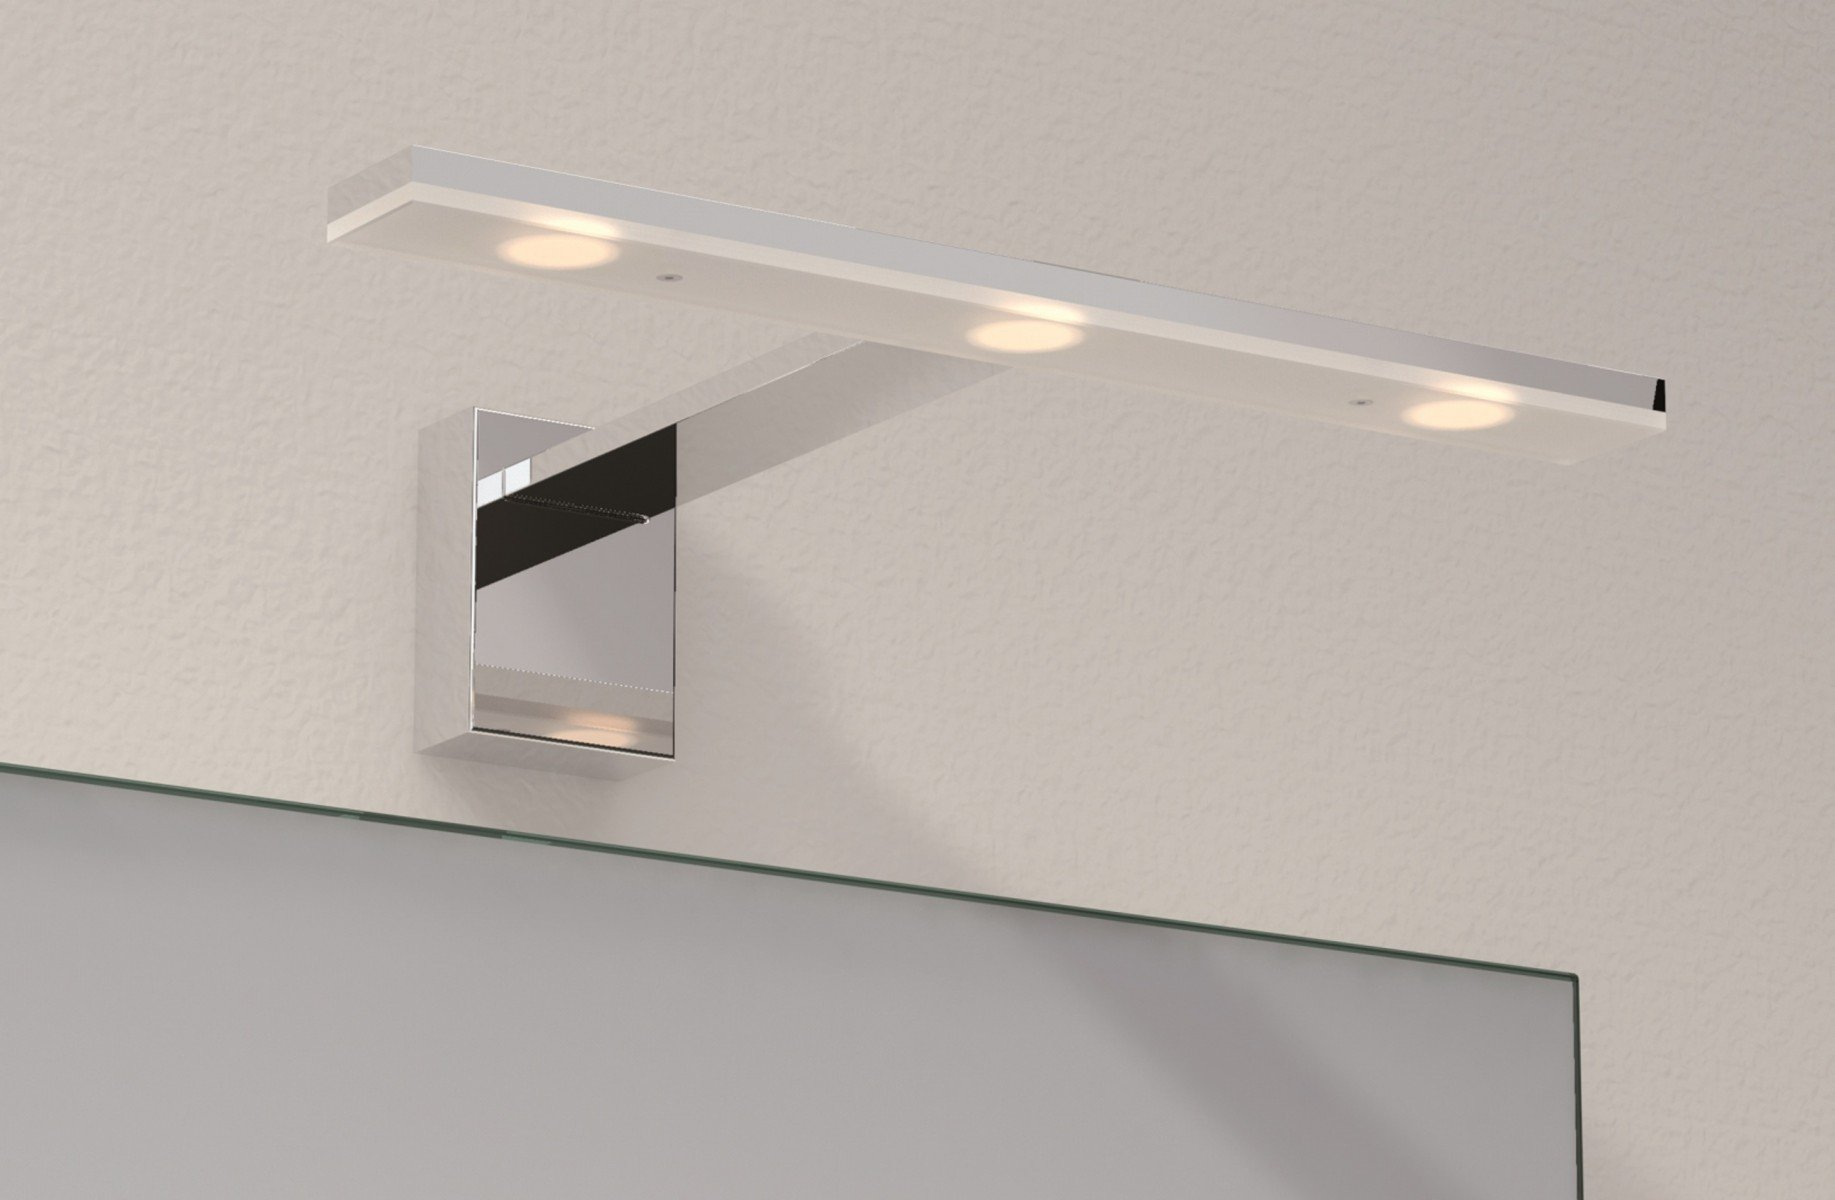 Apliques Baño Led Exo Lighting Tiel Aplique De Pared Baño Cromo Led 3x3w